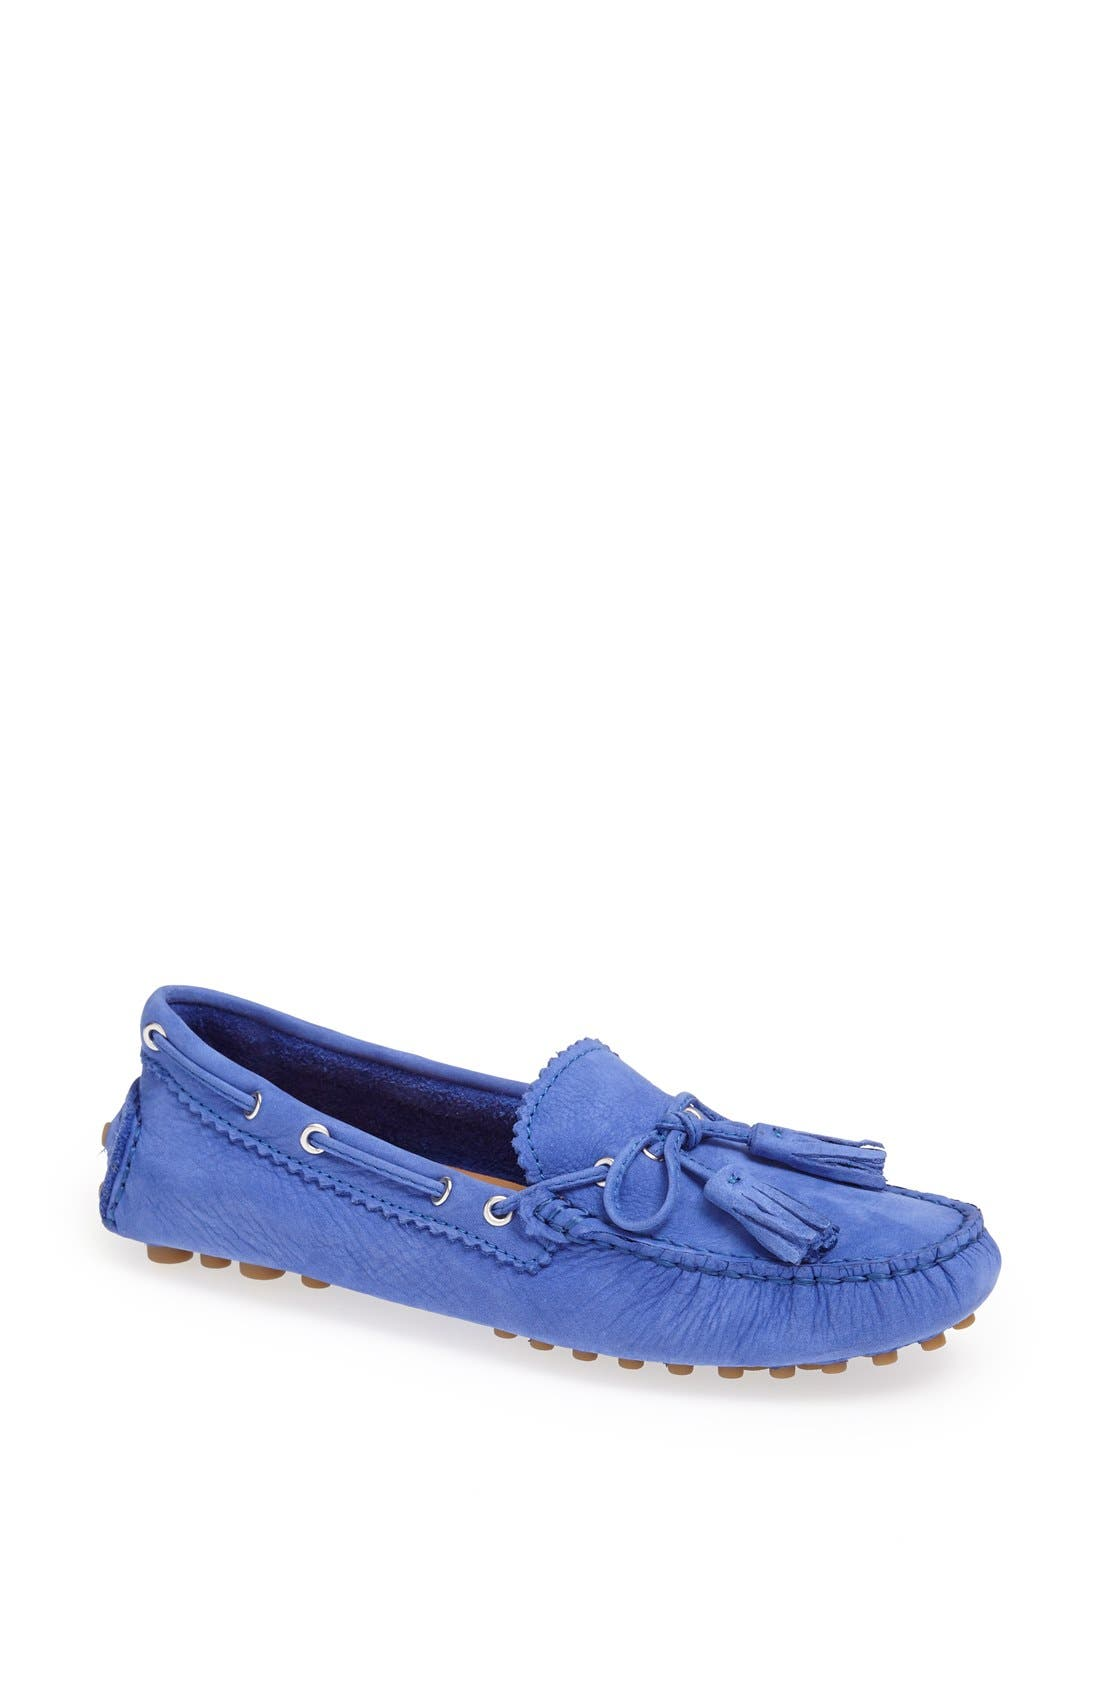 Alternate Image 1 Selected - COACH 'Nadia' Suede Driving Loafer